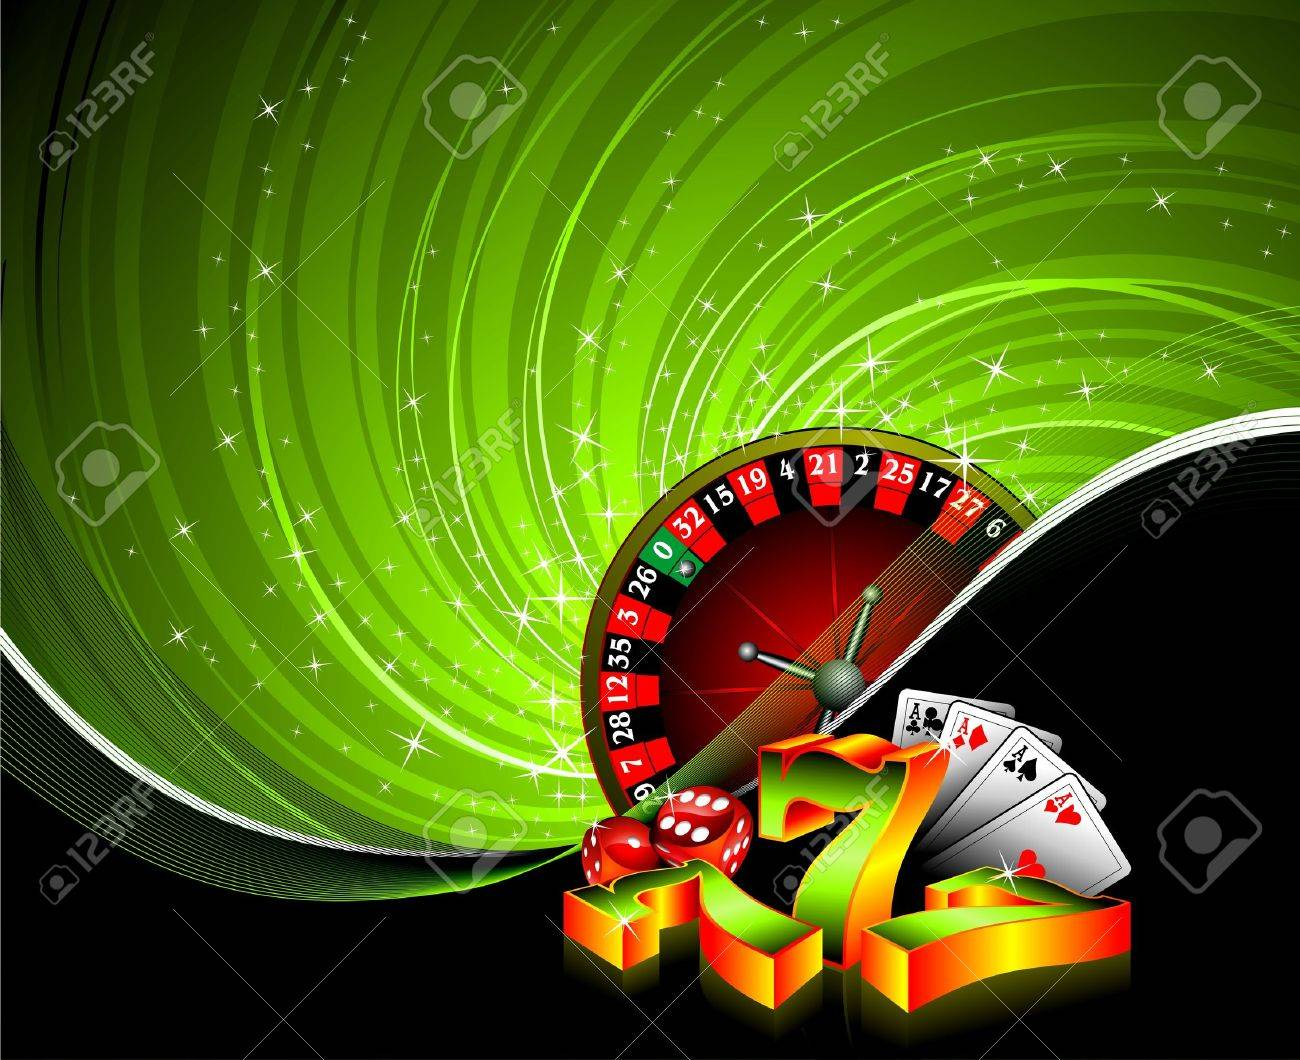 gambling illustration with casino elements on grunge background. Stock Vector - 7418963